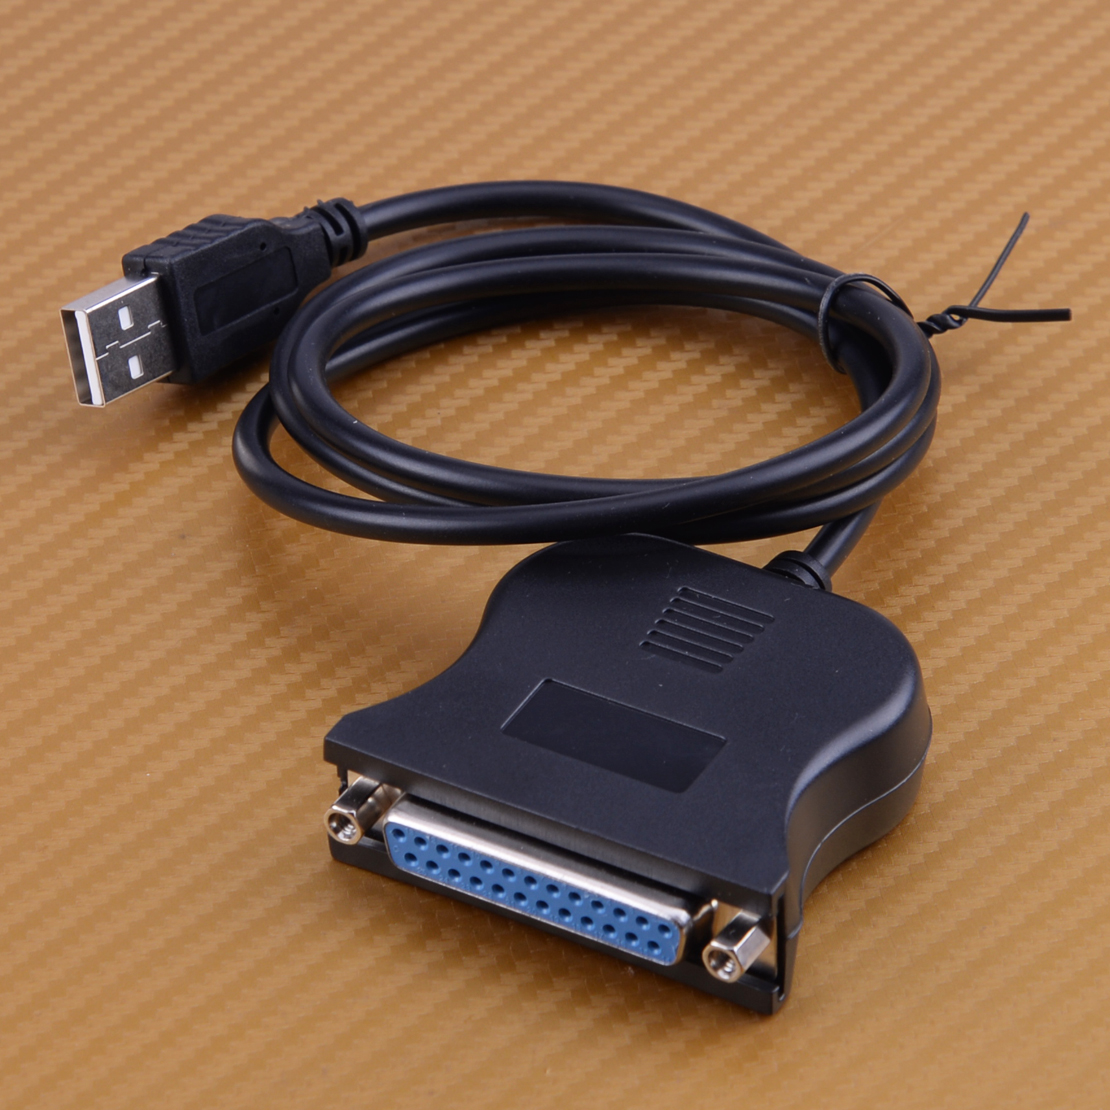 Black USB to 25 Pin DB25 Parallel Printer Cable Adapter Cord Converter